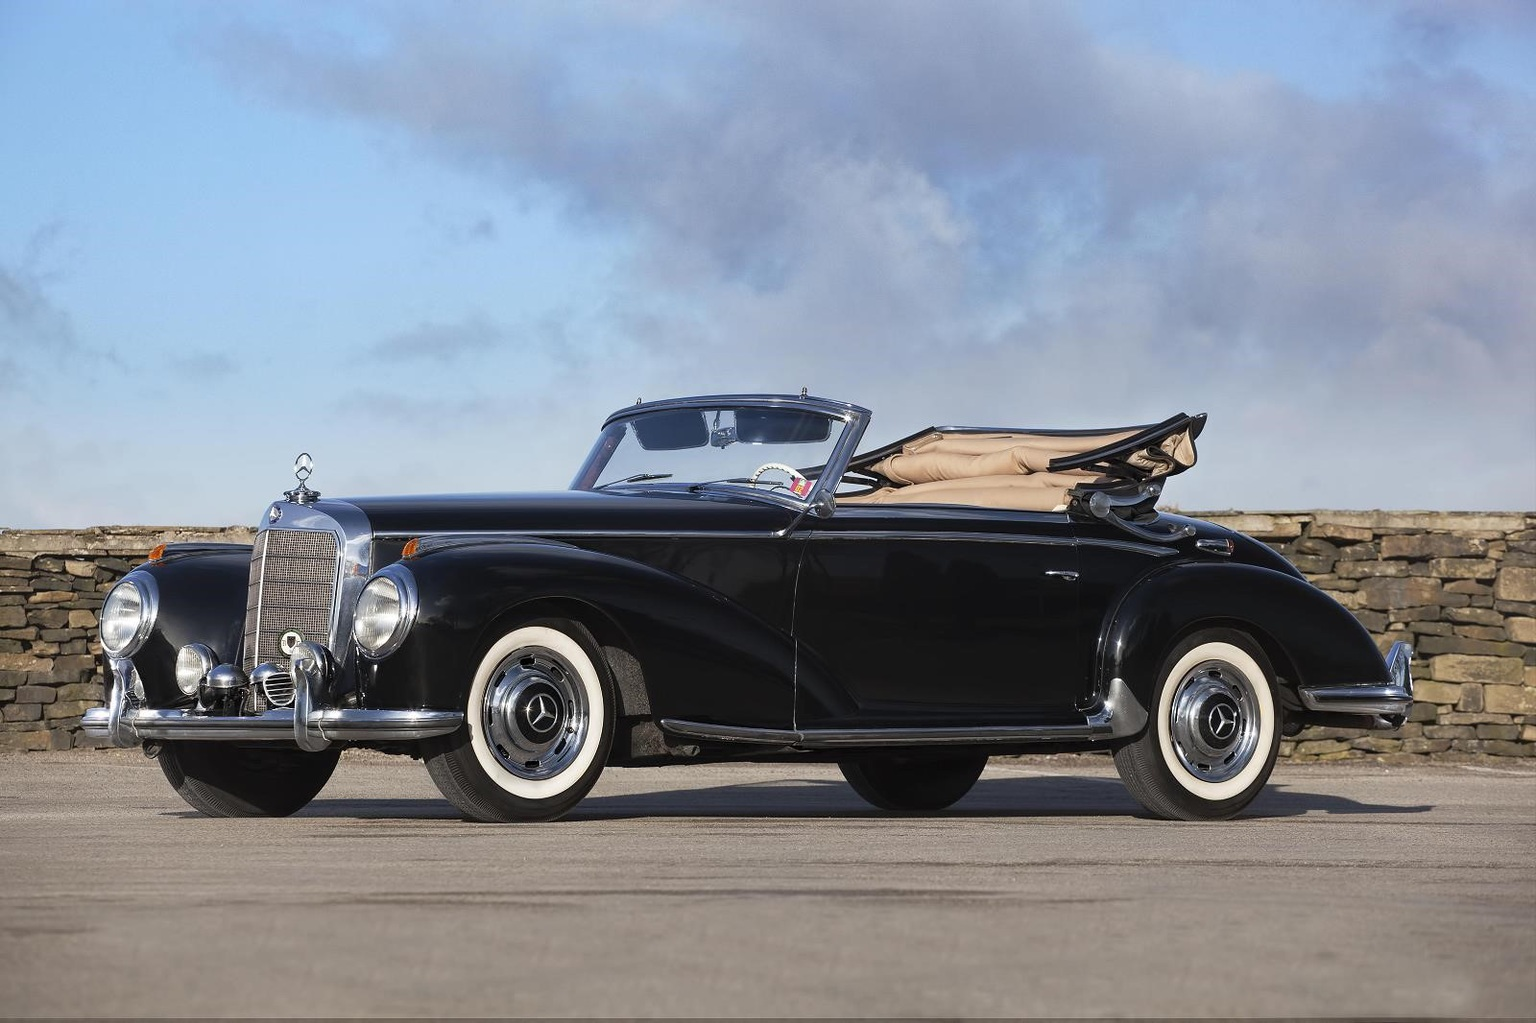 1952 mercedes benz 300 s cabriolet a gallery gallery for 1952 mercedes benz